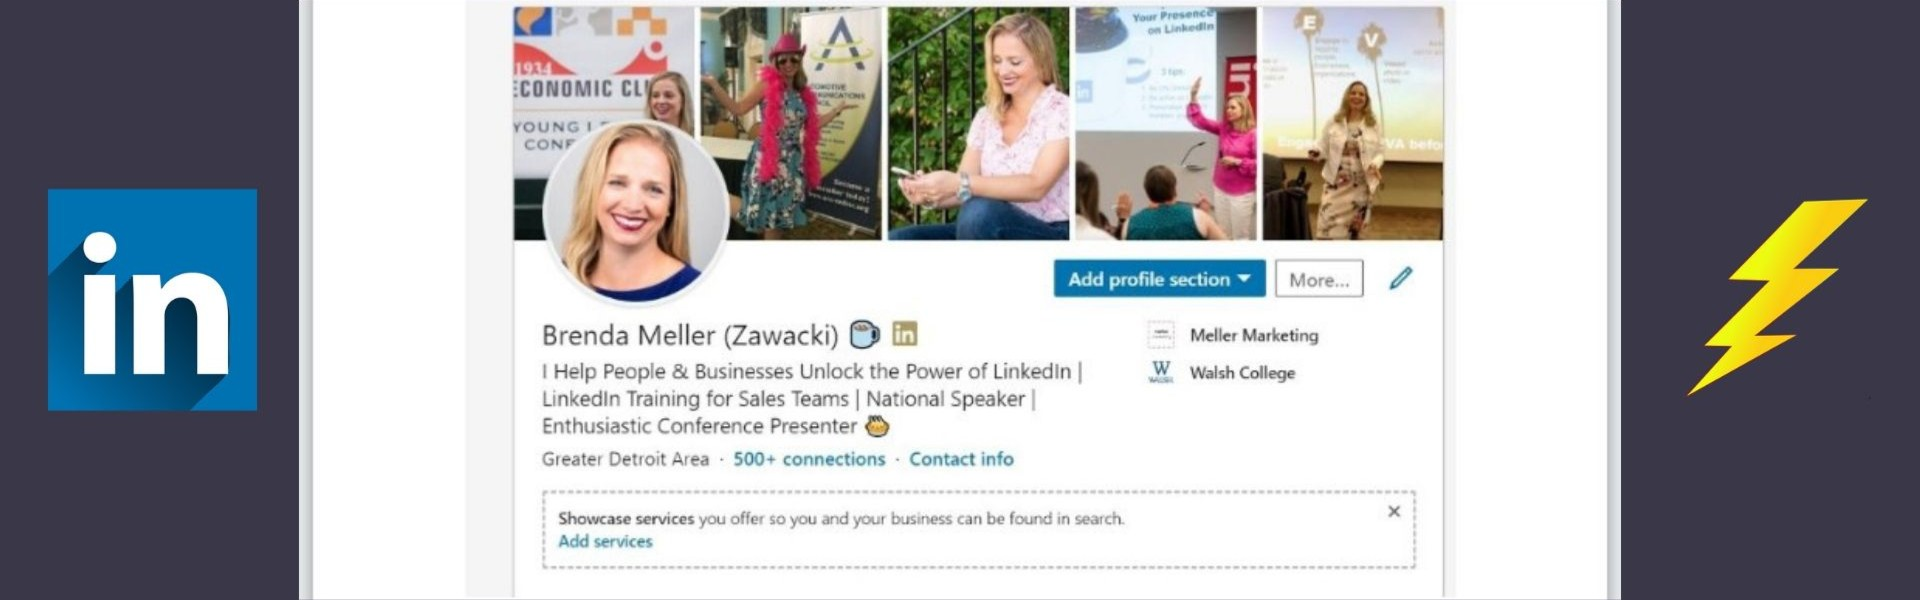 LinkedIn features, Showcase services